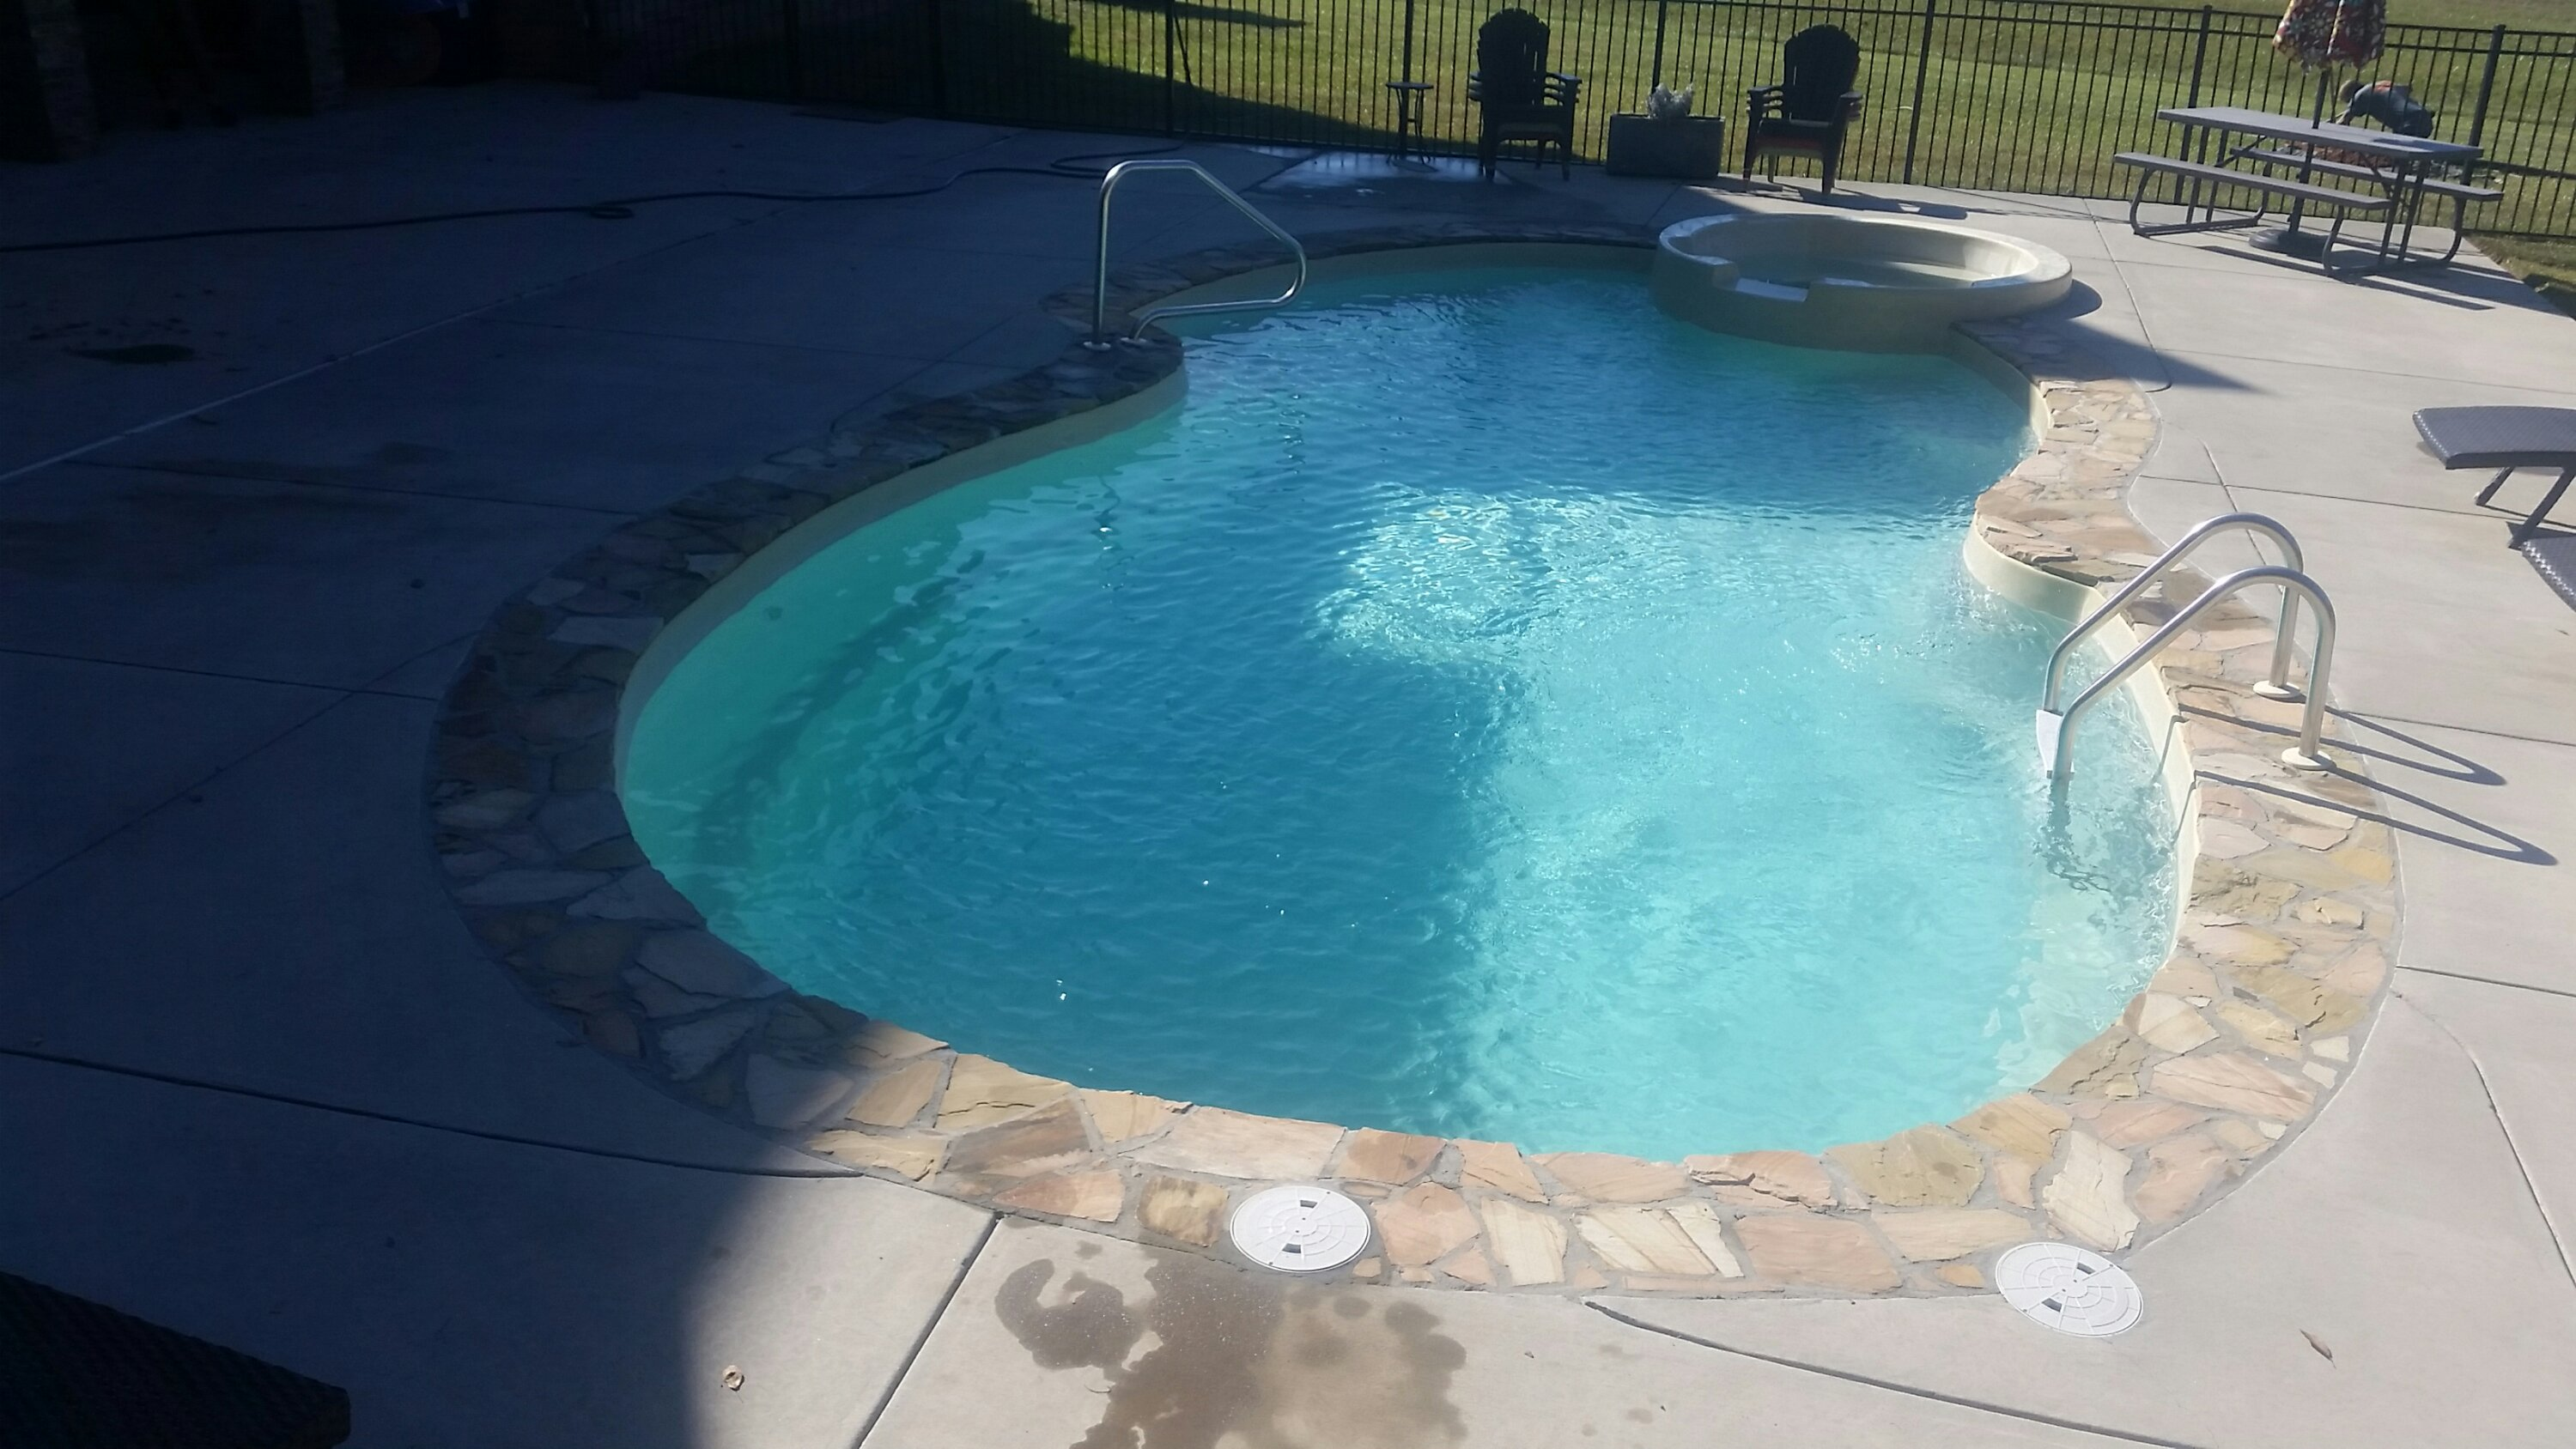 How to repair a swimming pool leak nps leak detection How to fix a swimming pool leak